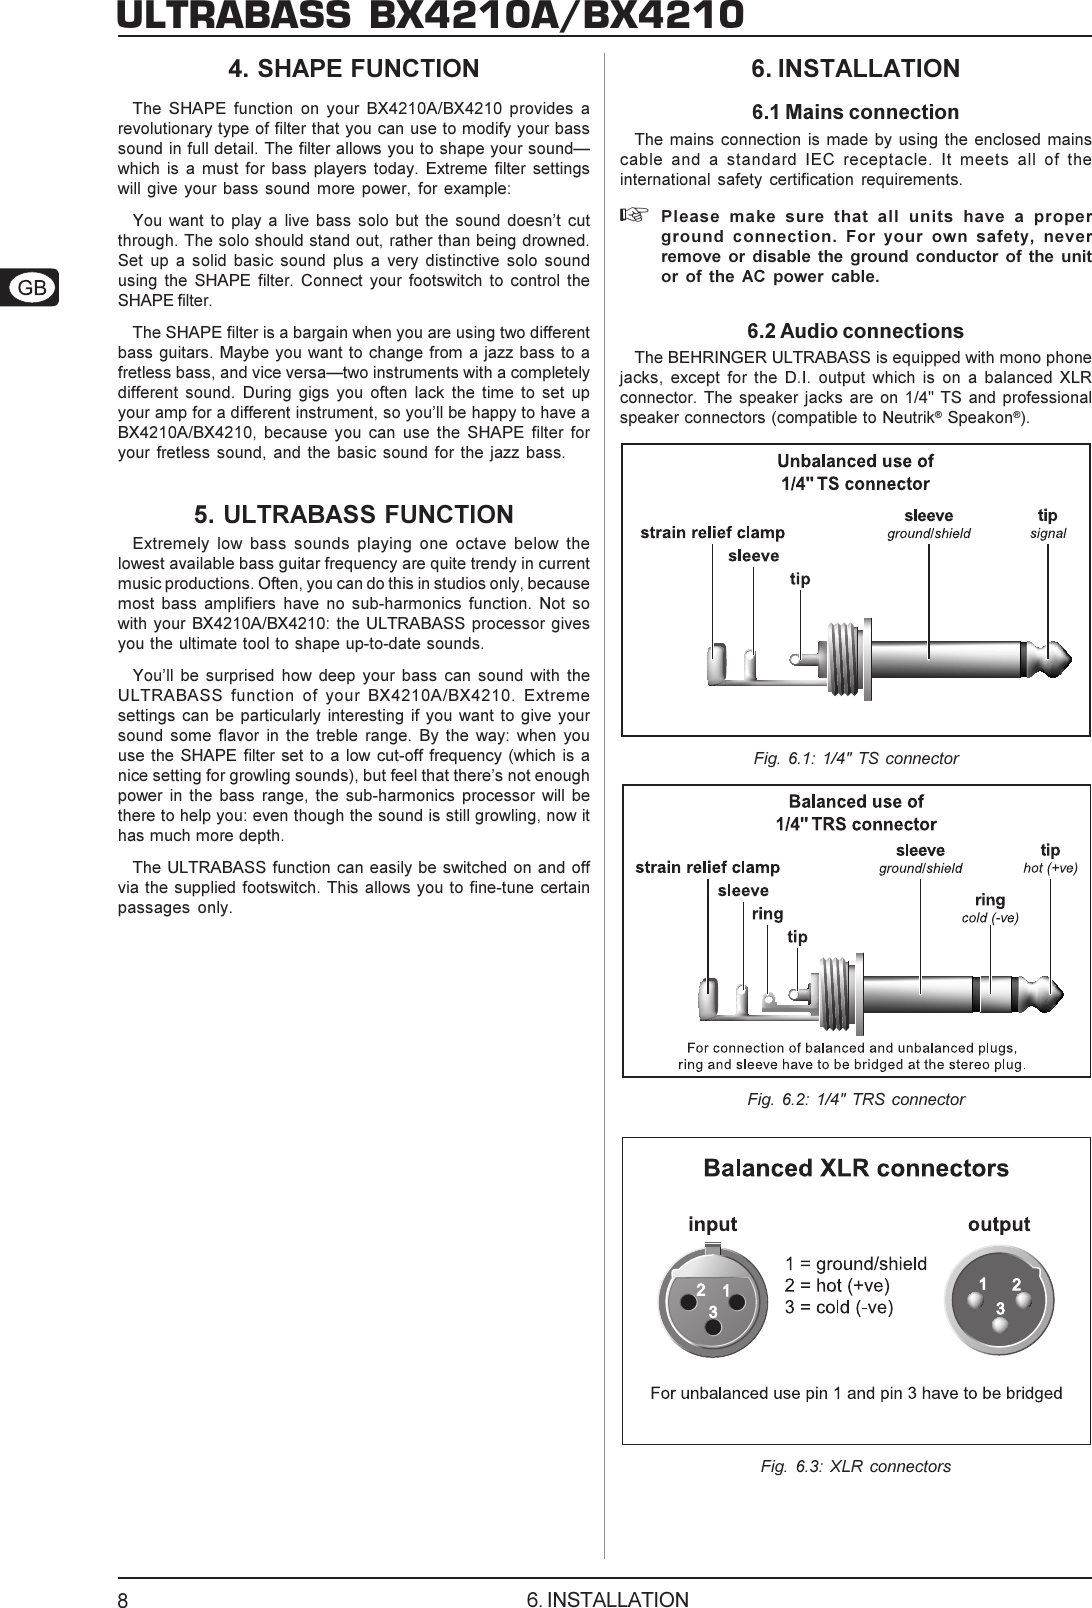 Data Manfull Bx4210a Eng Rev Cpmd Behringer User Manual Schematic Balanced Xlr To Connections Page 8 Of 10 P0361 M